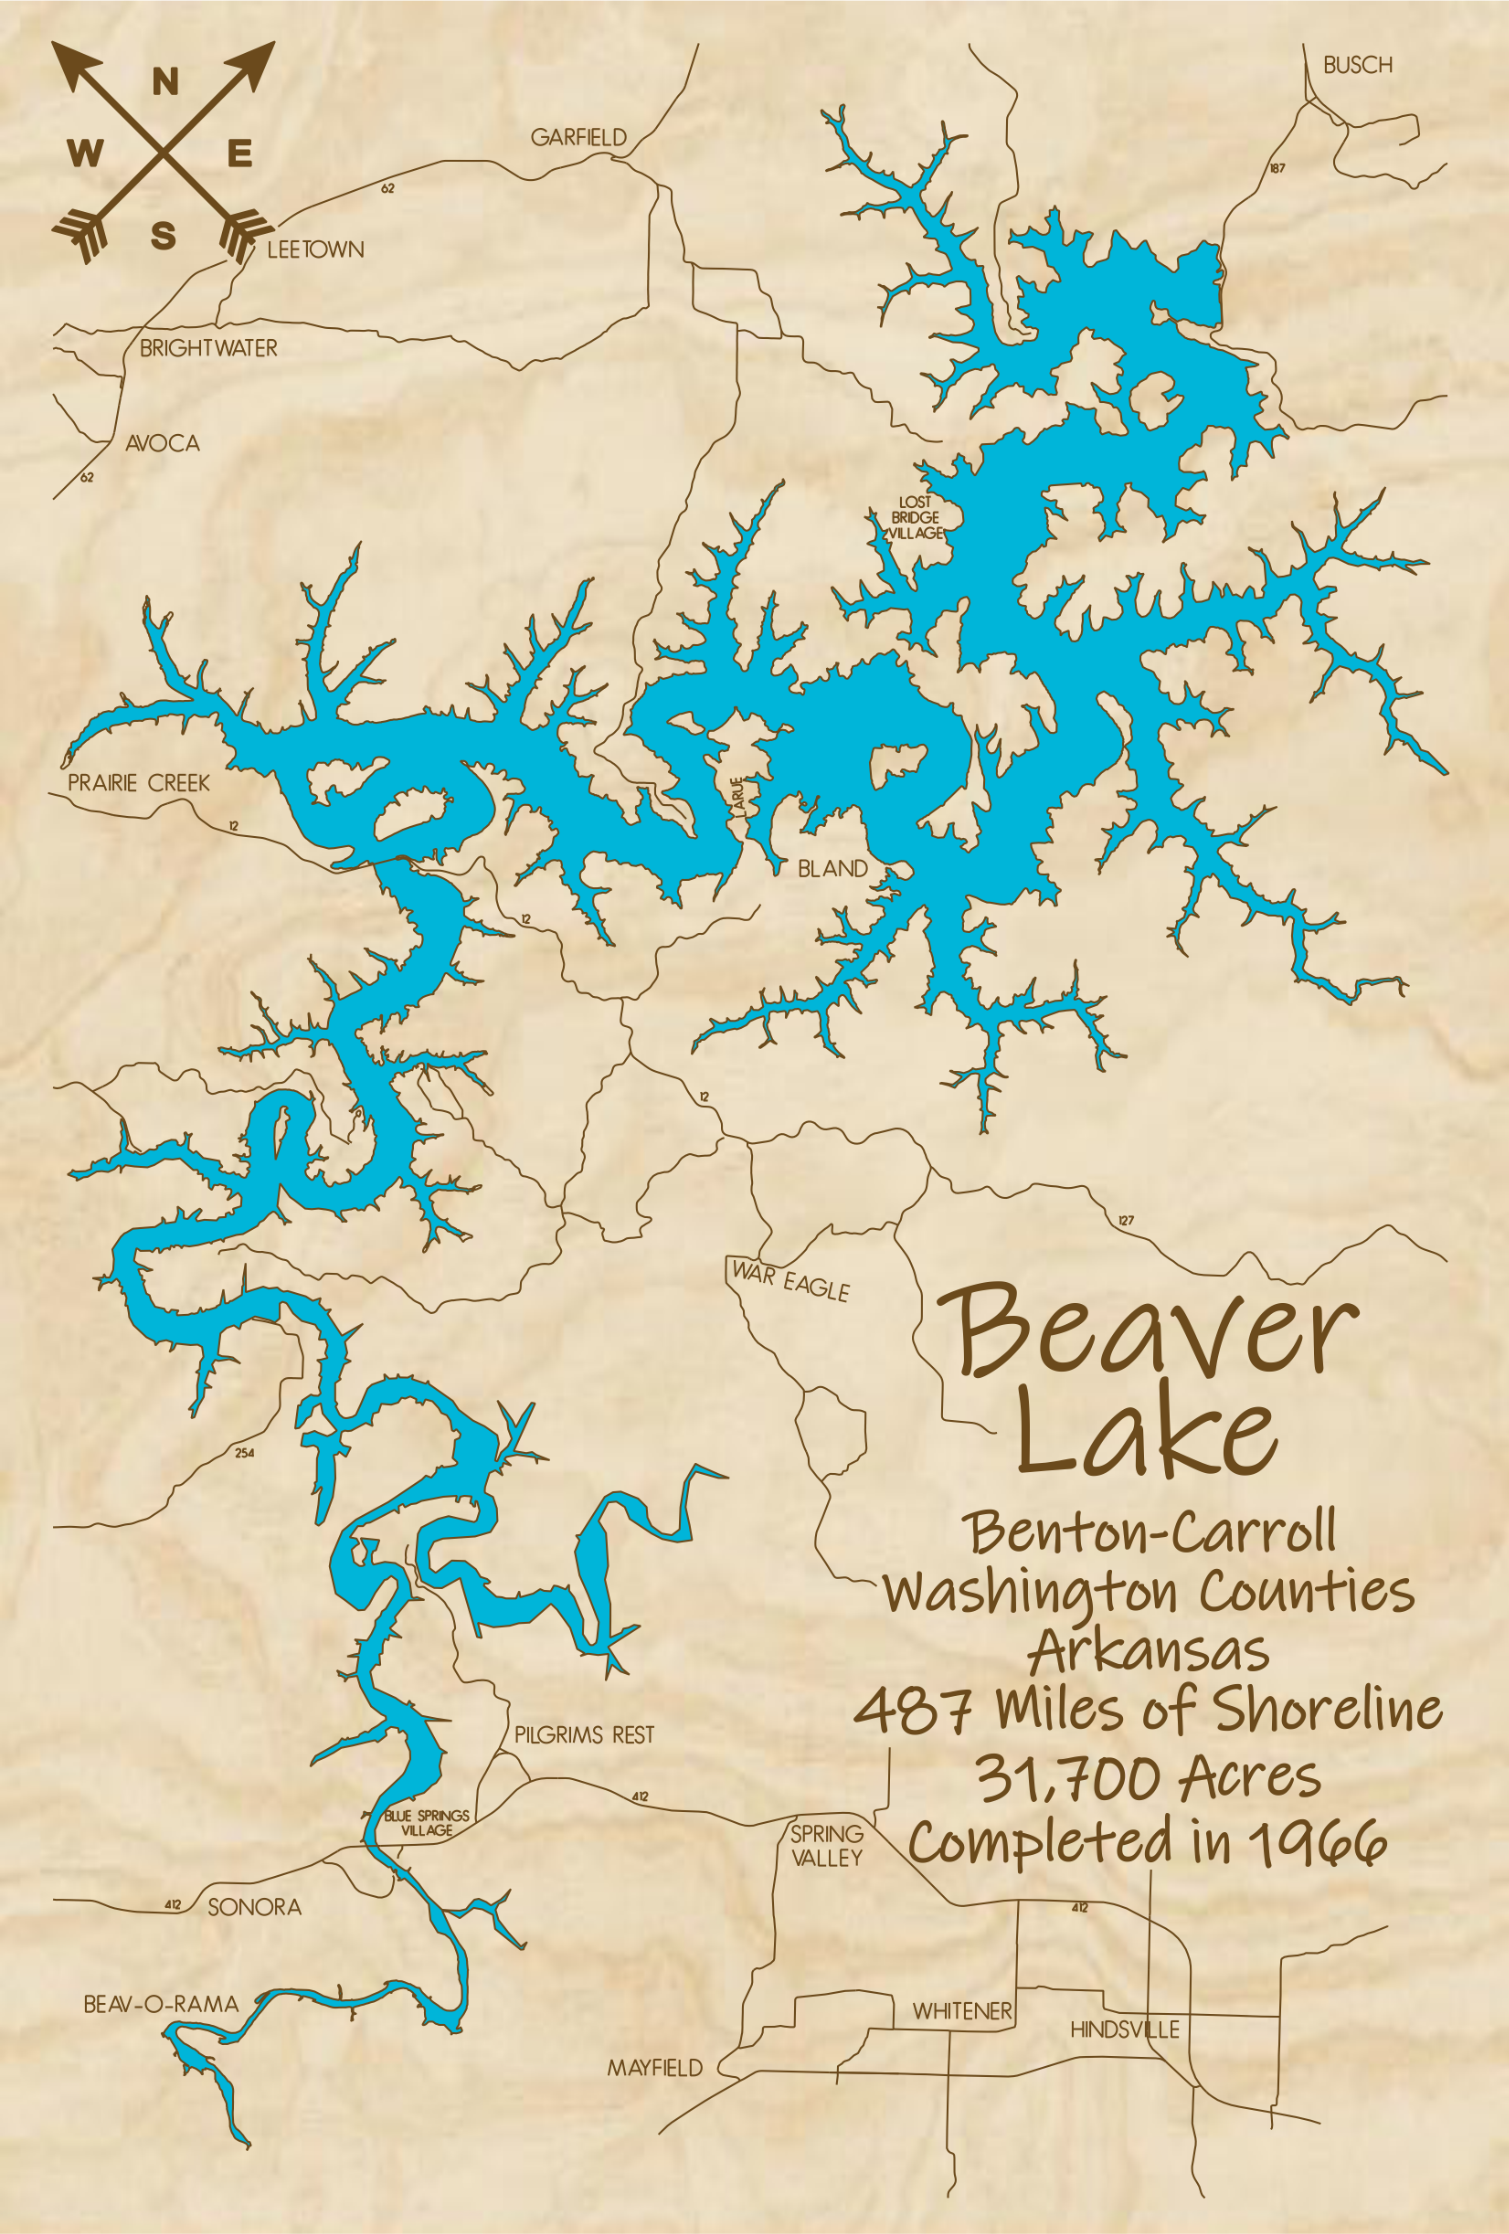 Beaver Lake Multi-layered Wood Lake Map